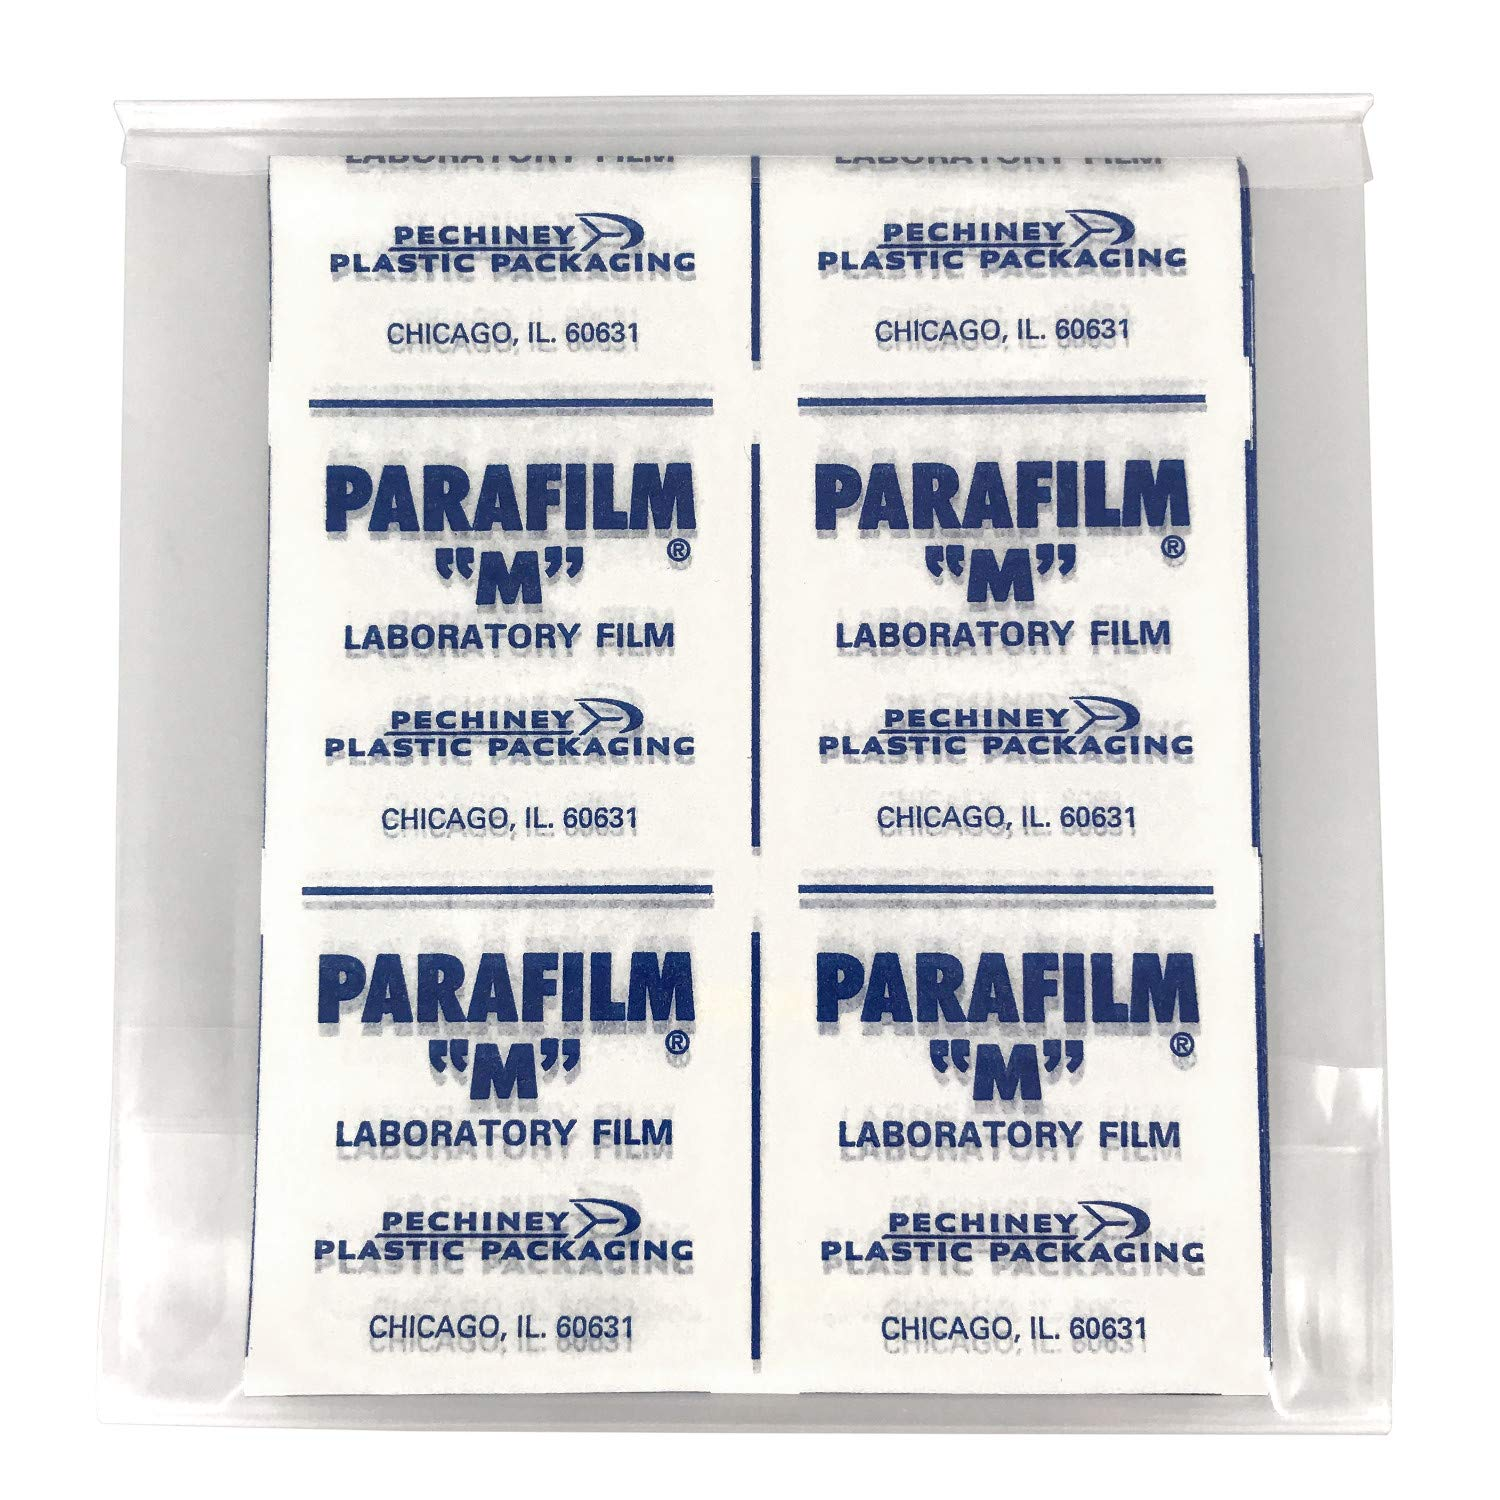 Parafilm Laboratory Paraffin Film 10cm Width 100cm Length Protect and Seal Glassware Pechiney Plastic Packing